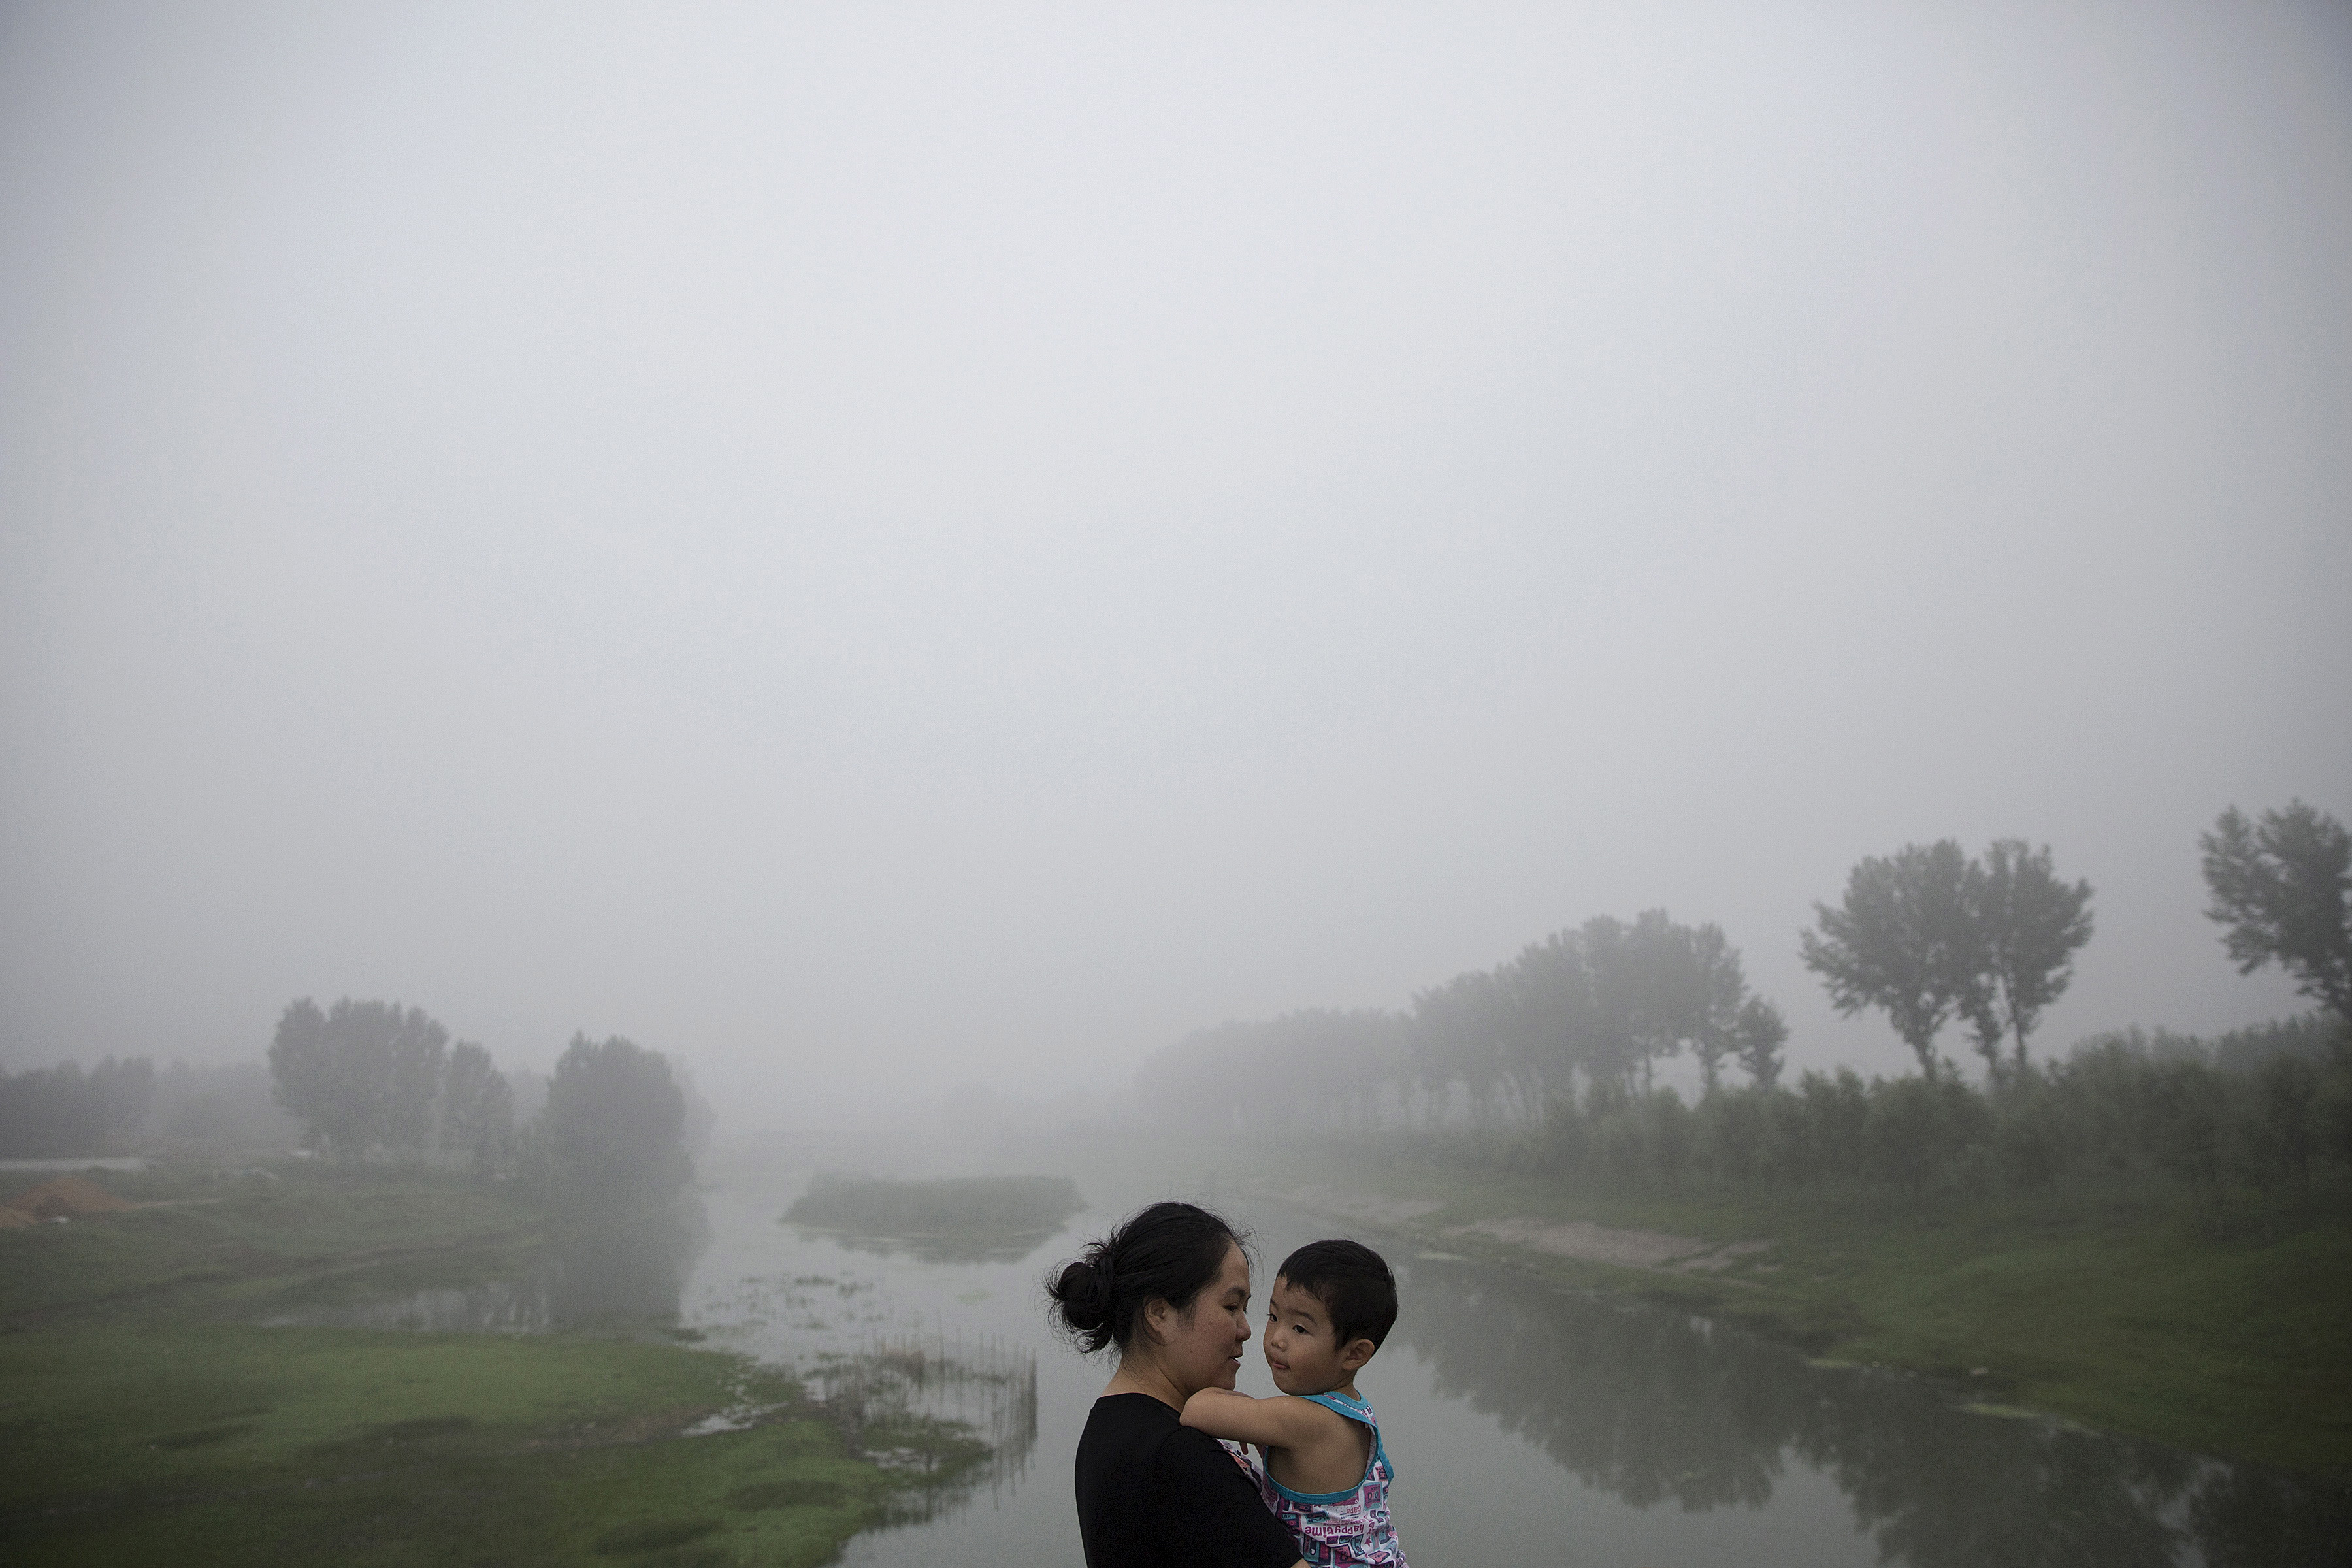 A woman holds a child as travelers wait for the highway from Beijing to China's Hebei Province to reopen after it was closed due to low visibility, on a heavily polluted morning on Aug. 3, 2015.